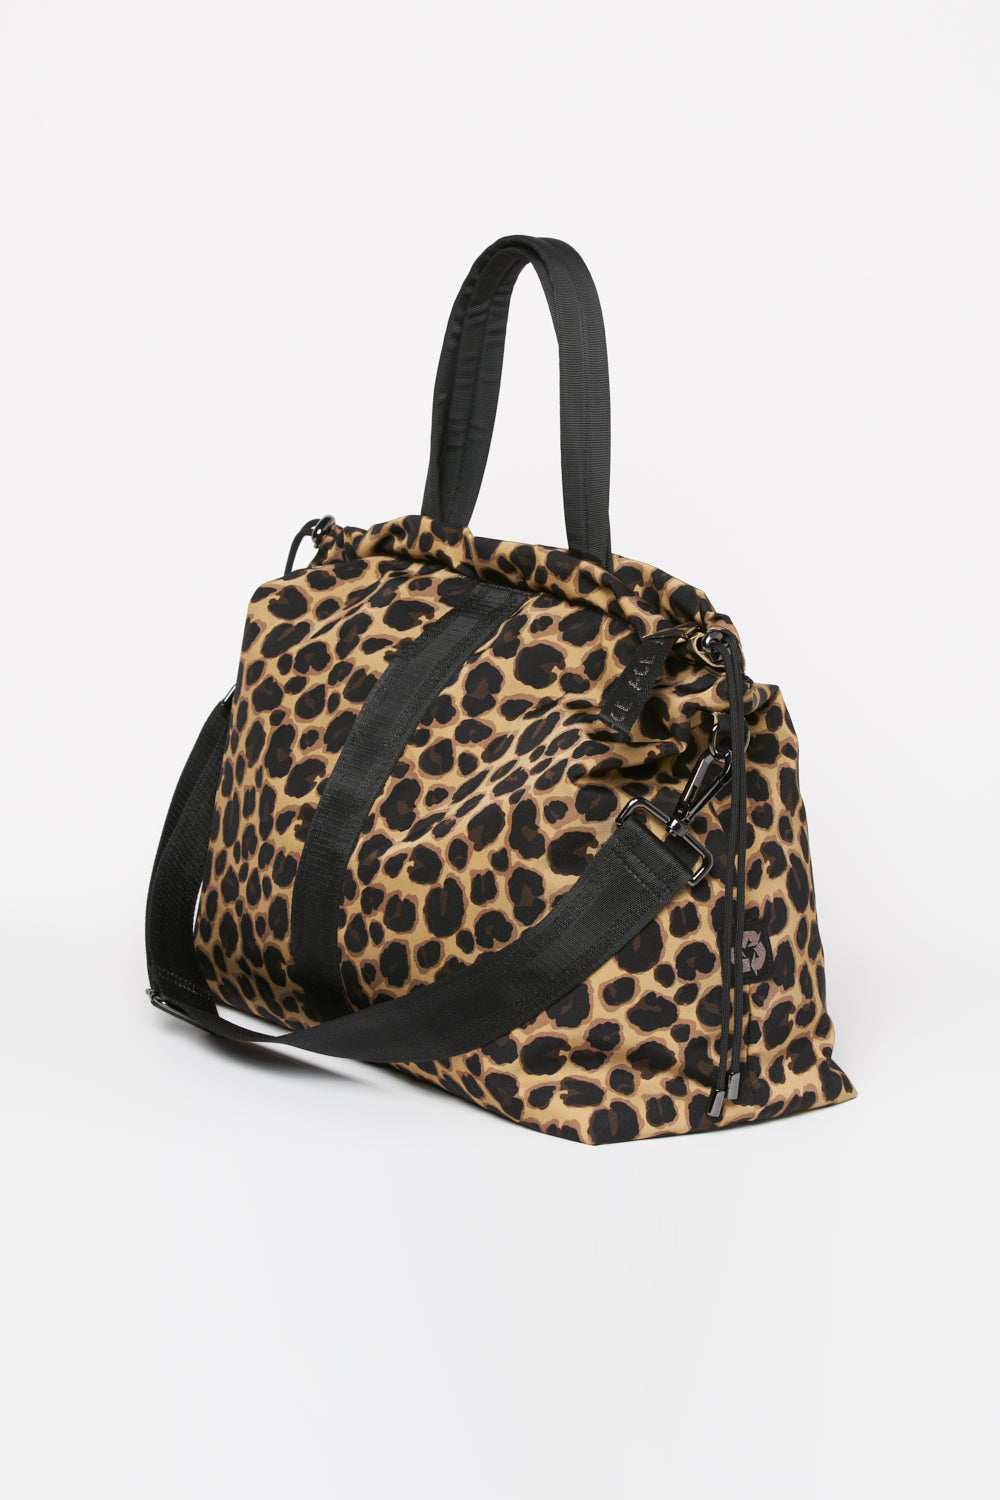 Tote bag in leopard print eco fashion